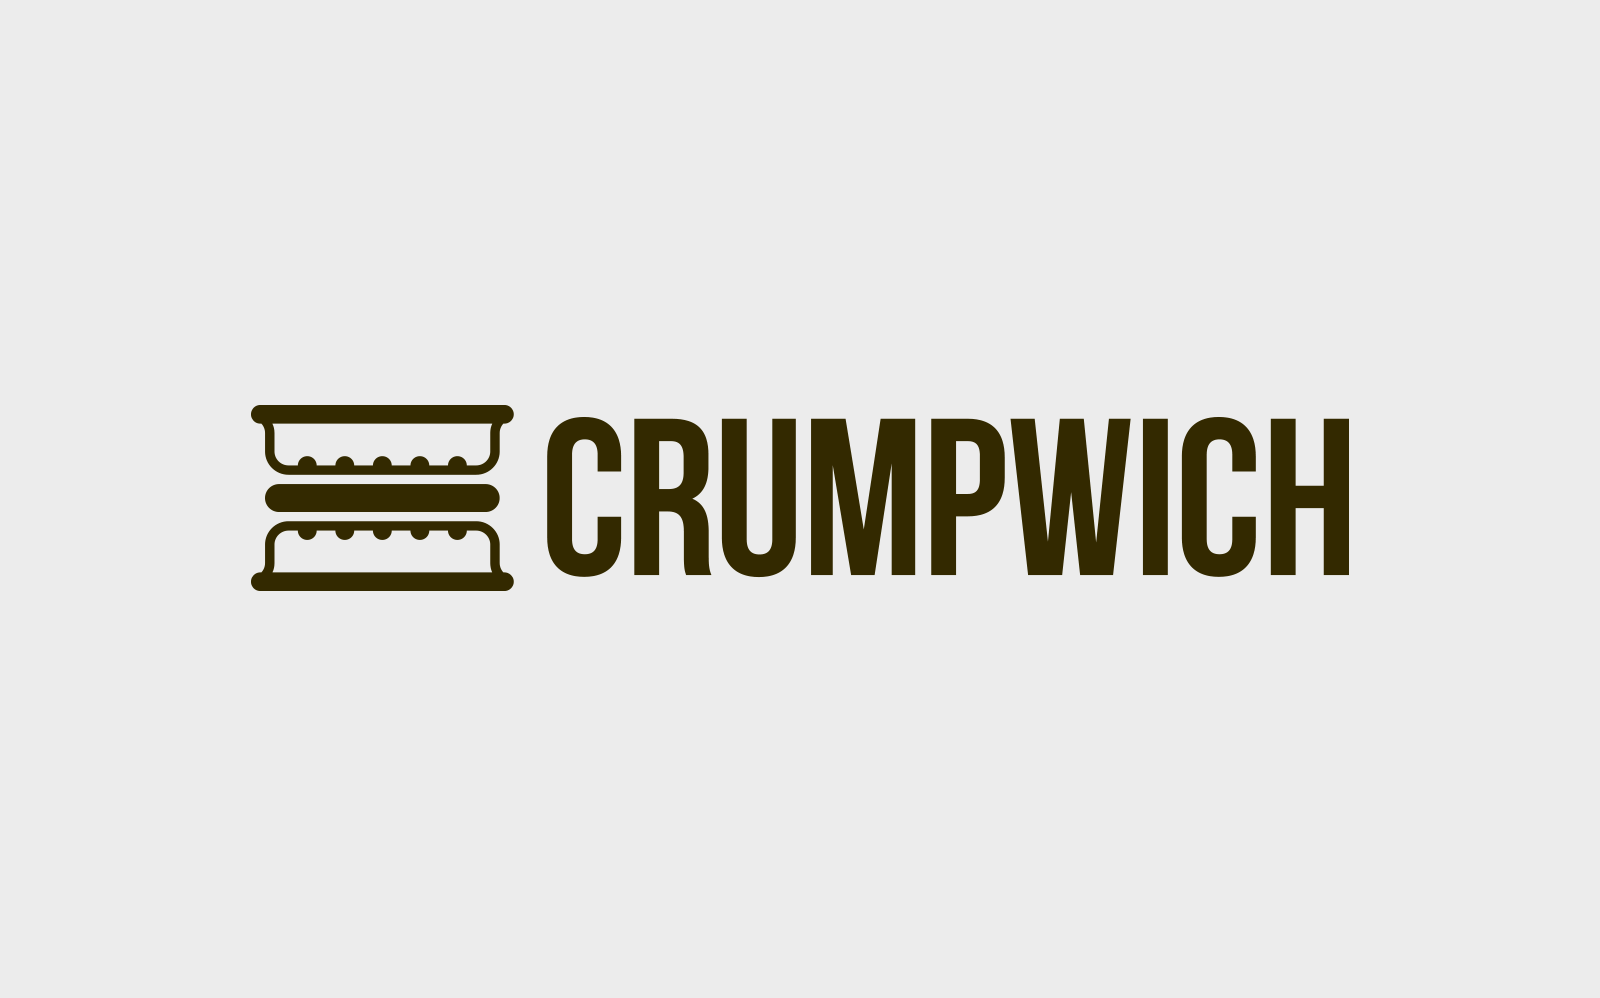 Crumpwich small business logo design